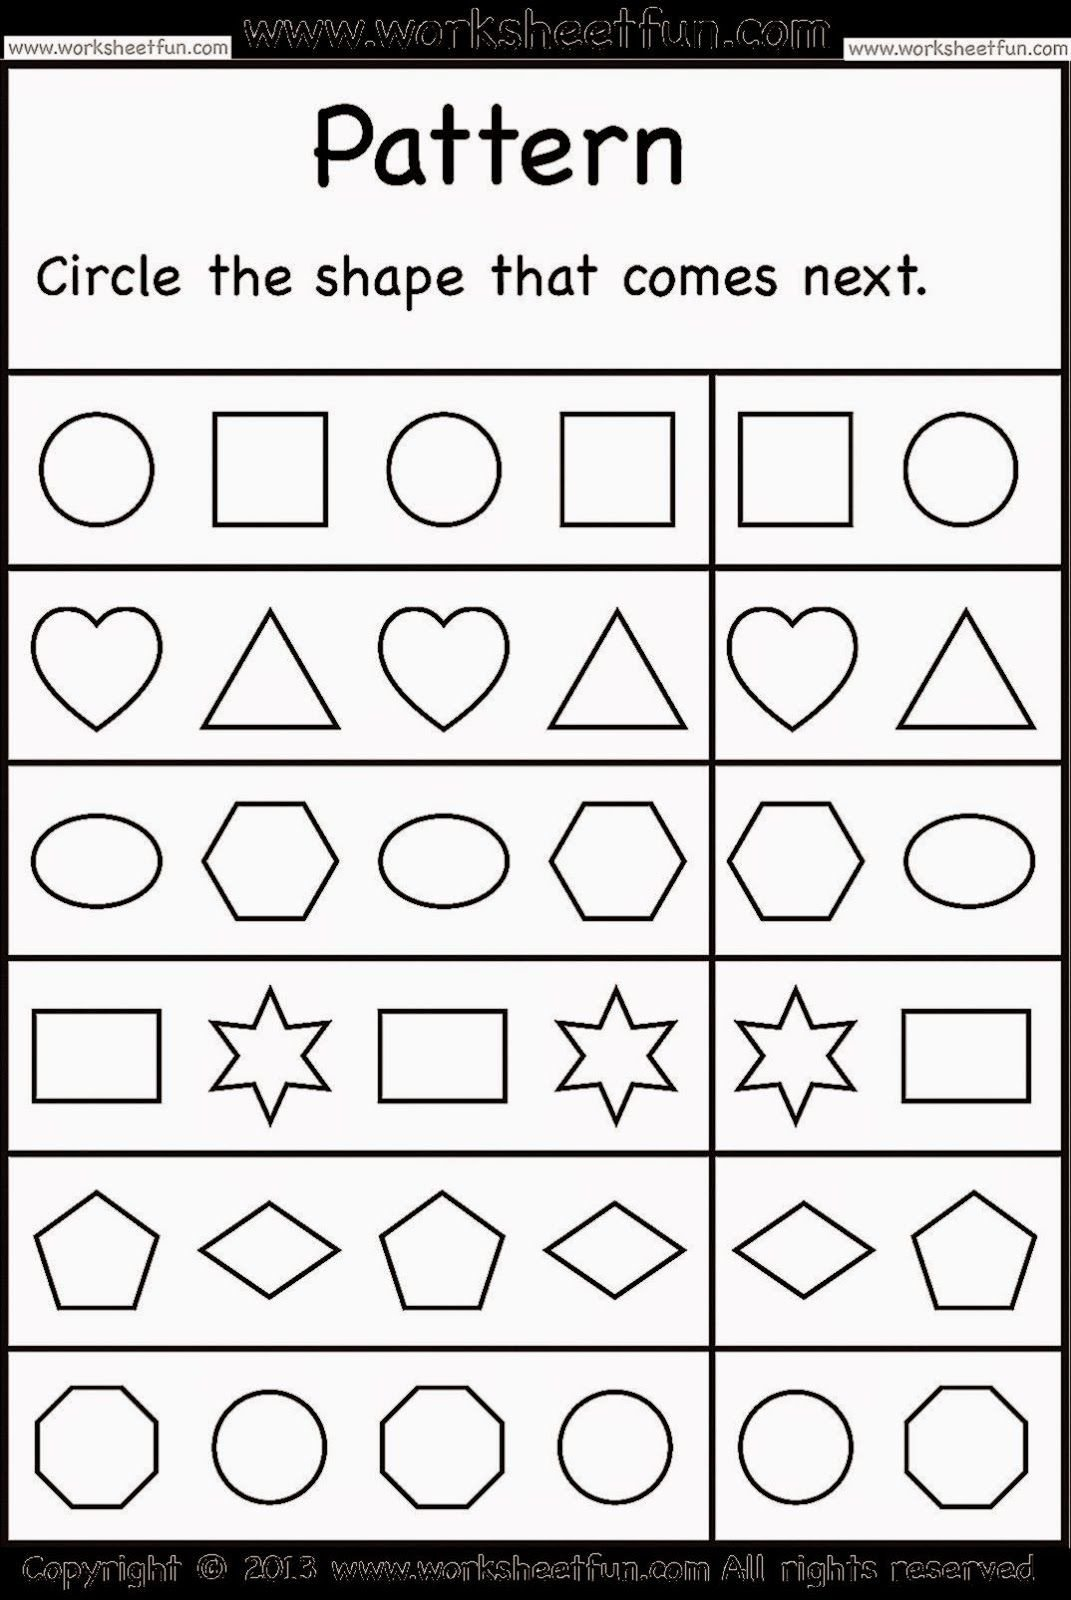 Geometric Shapes Patterns Worksheets Worksheetfun Loads Of Free Printable Worksheets for